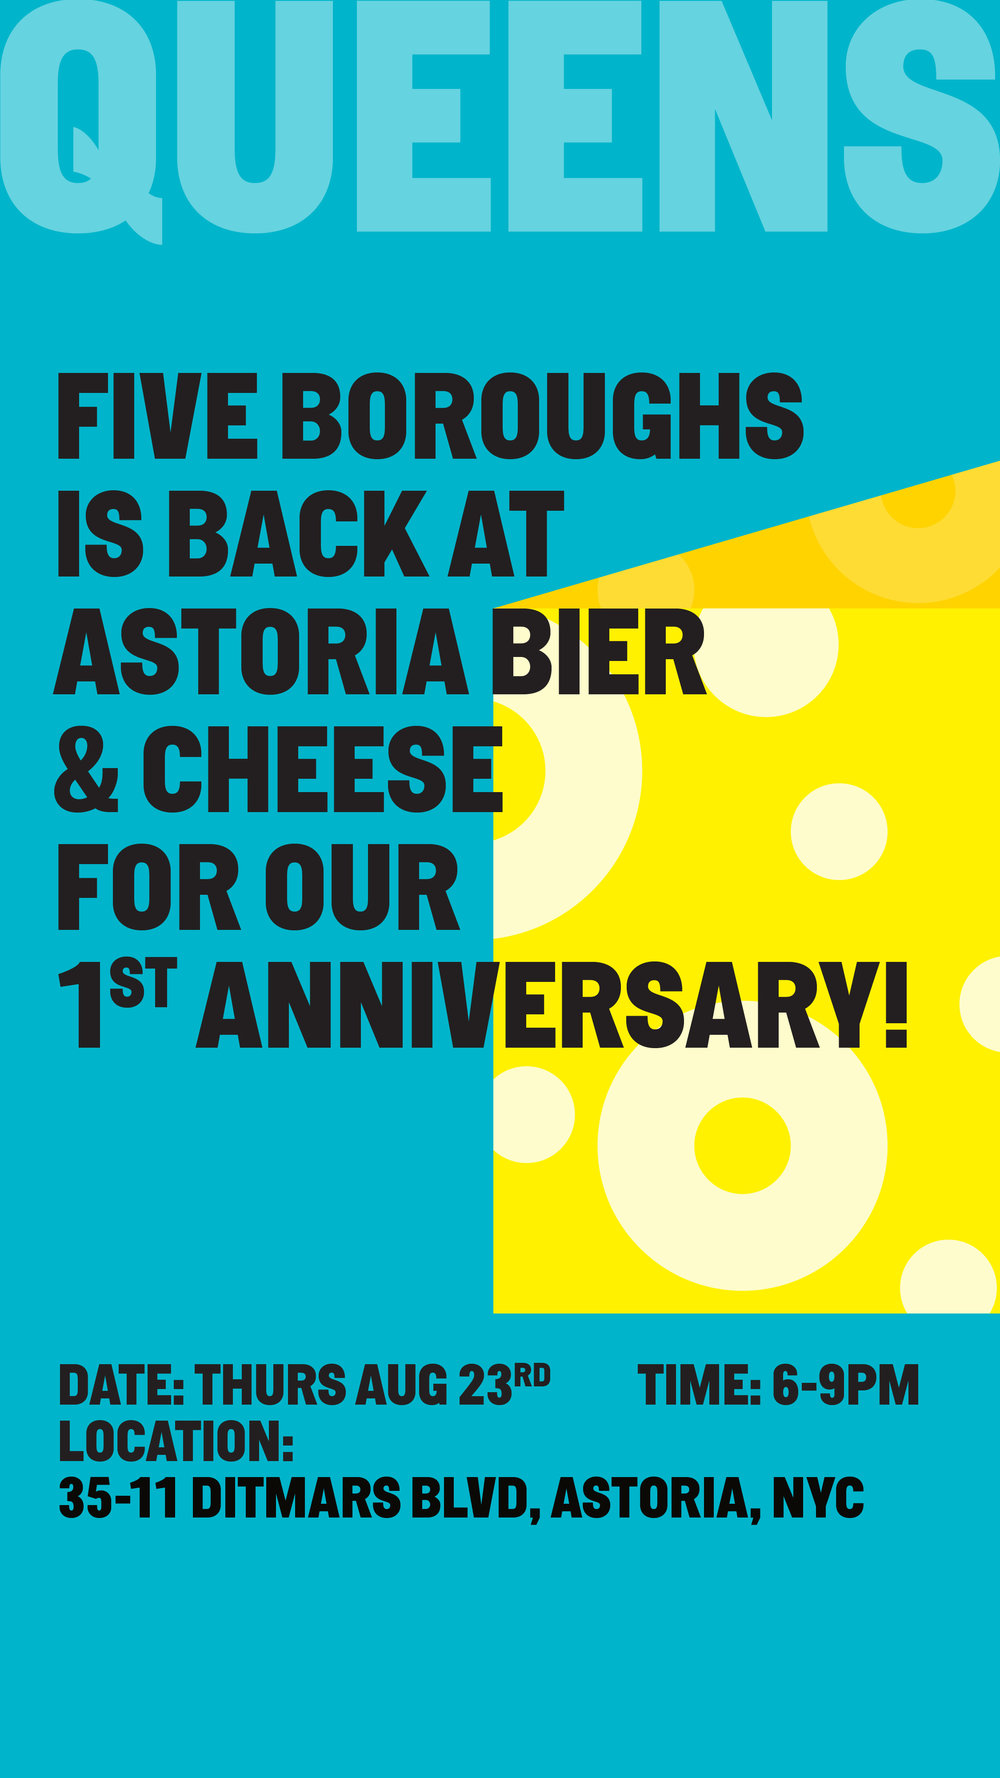 Astoria Bier & Cheese Ditmars and Five Boroughs 07252018-01.jpg